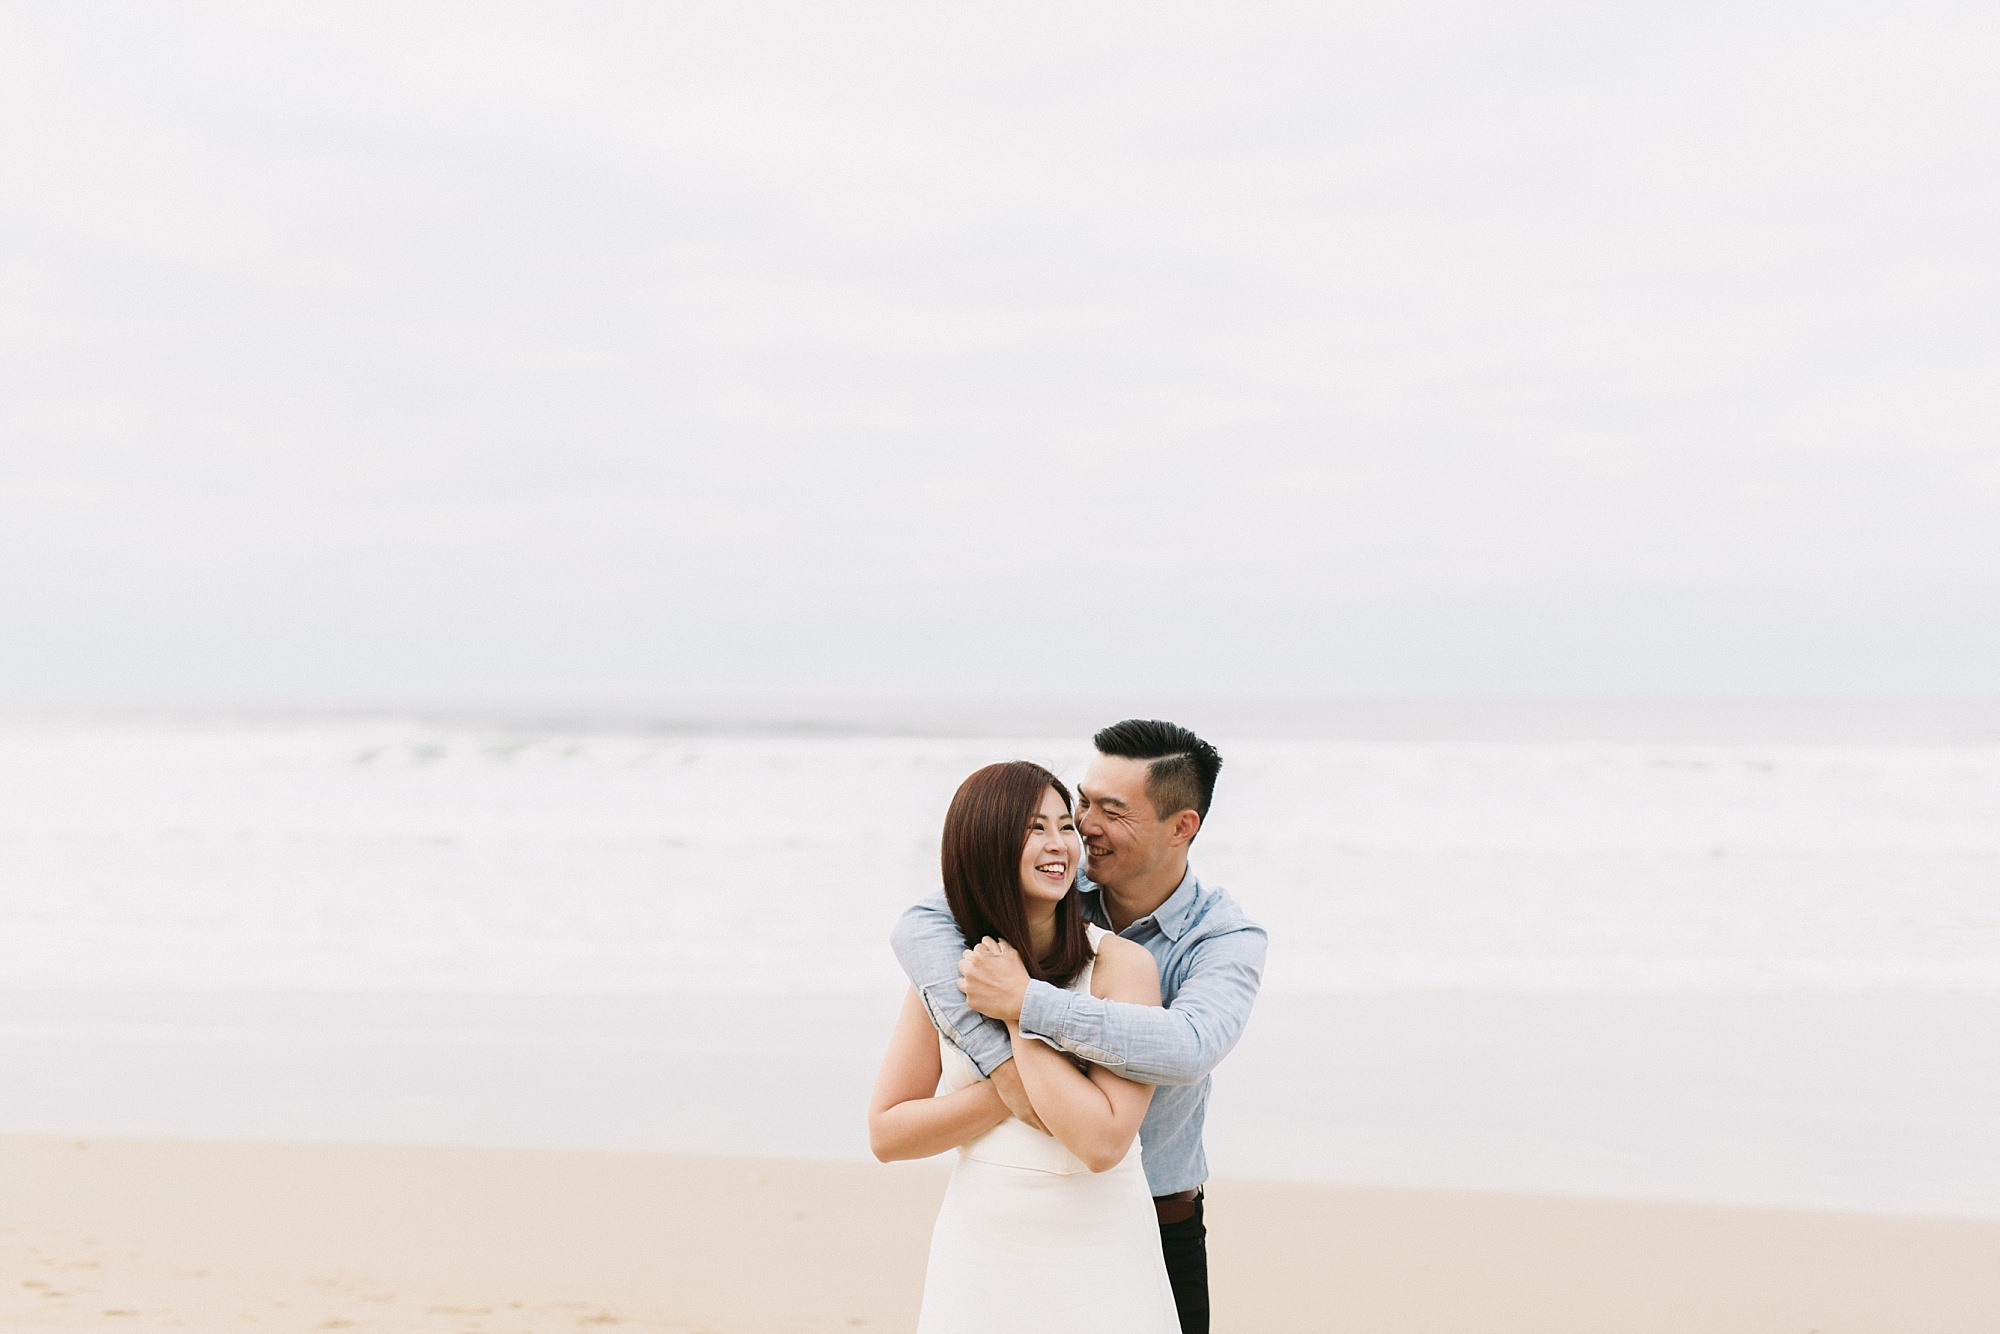 Torquay Lorne Natural and Fun Engagement Wedding Photographer 151.JPG